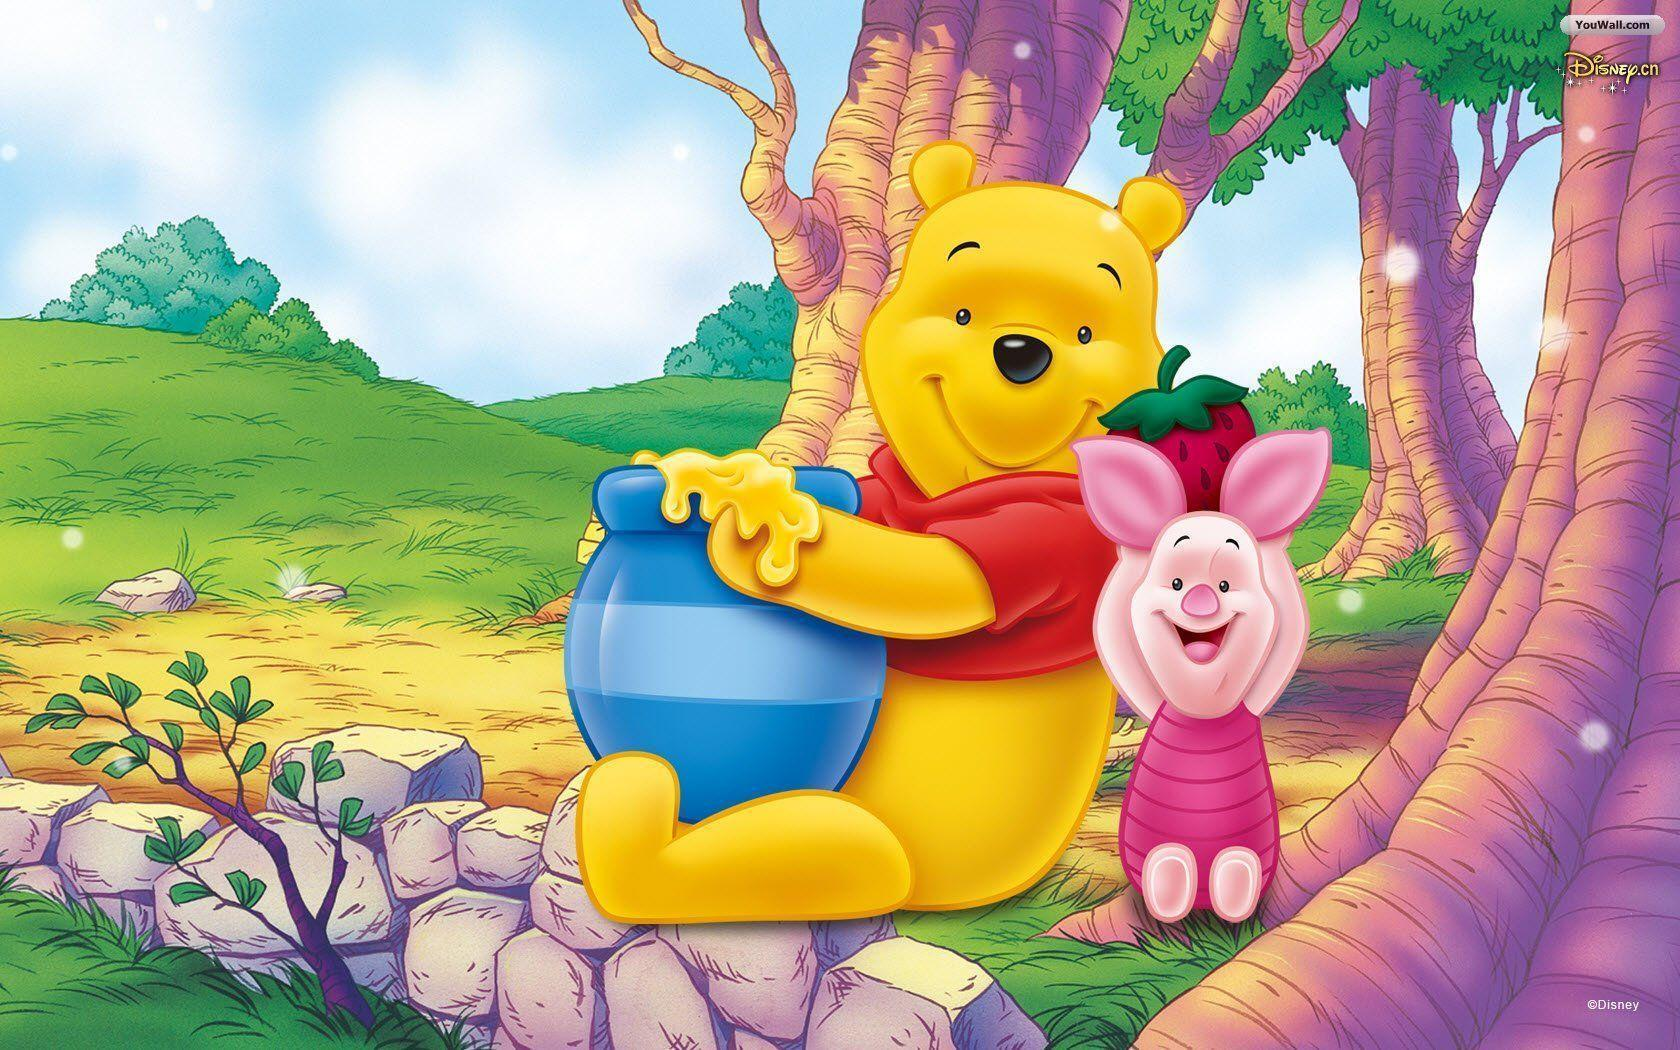 Winnie the Pooh High Resolution Wallpaper Free | Cartoons Images